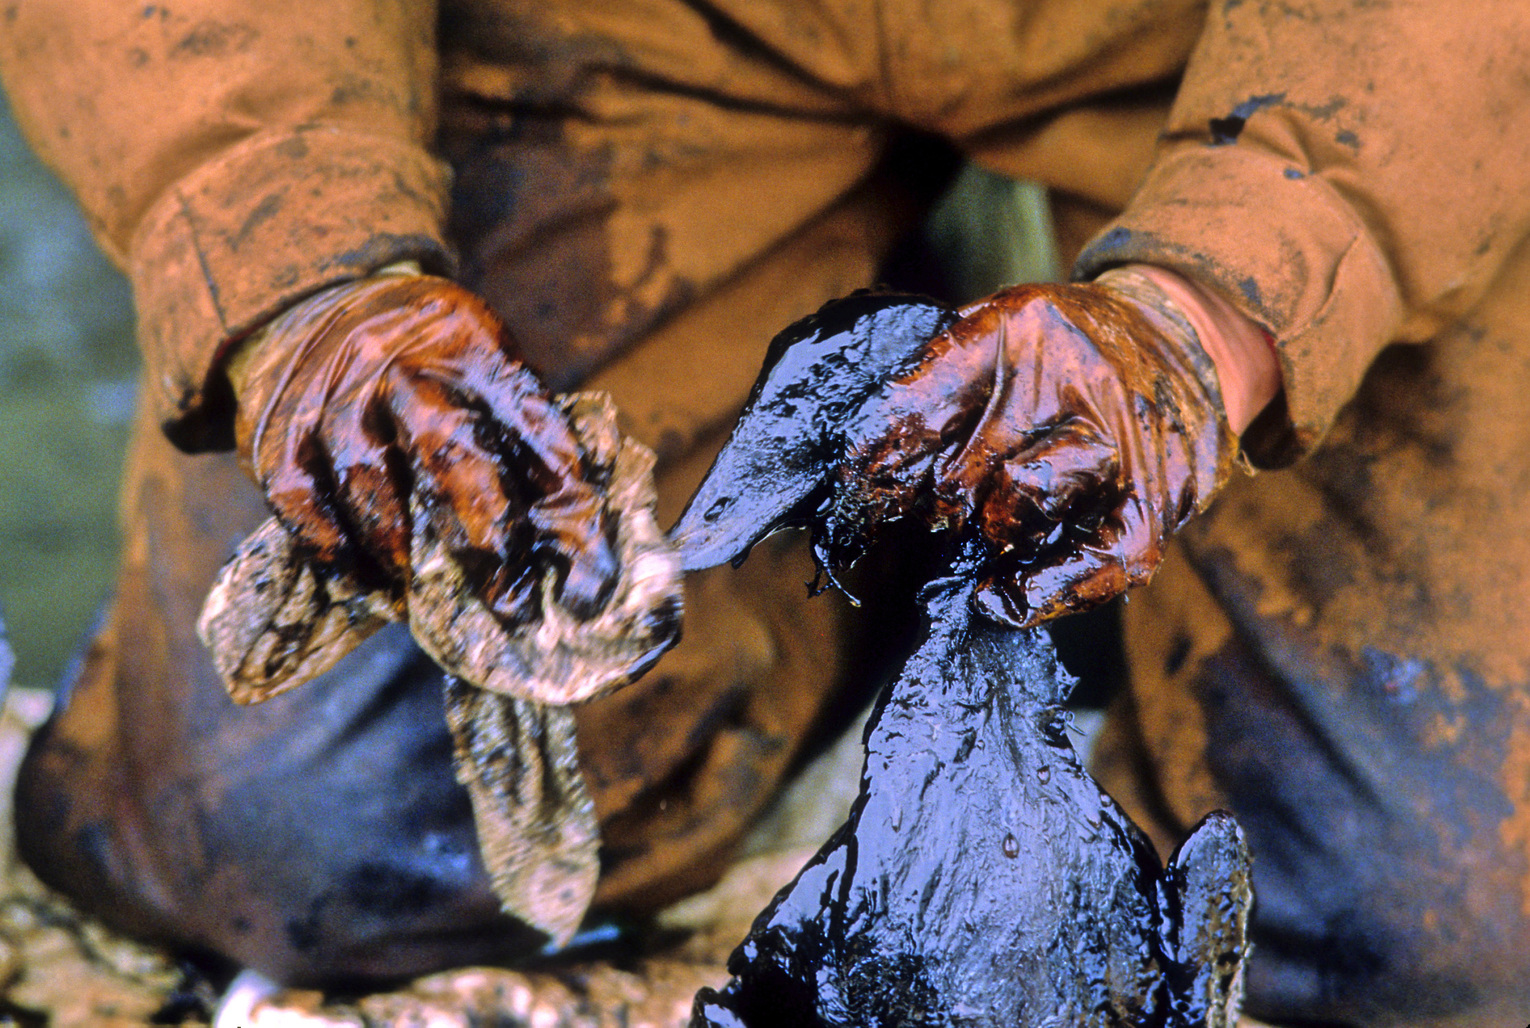 Exxon Valdez oil spill workers recover and clean birds soiled by crude oil spilled when the tanker ran aground in Prince William Sound, April 6, 1989.  (Fotó: Bob Hallinen/Anchorage Daily News/MCT/Getty Images)